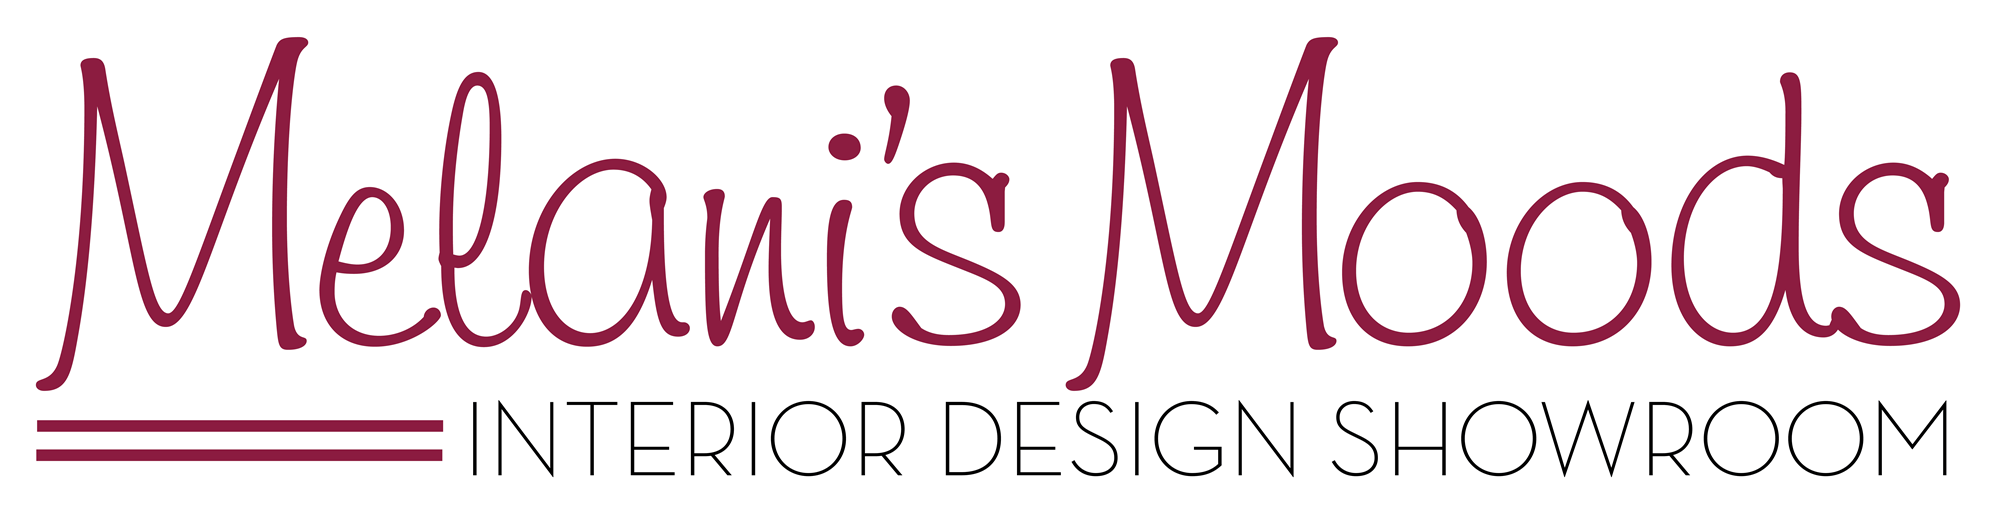 Melani's Moods Interior Design Showroom